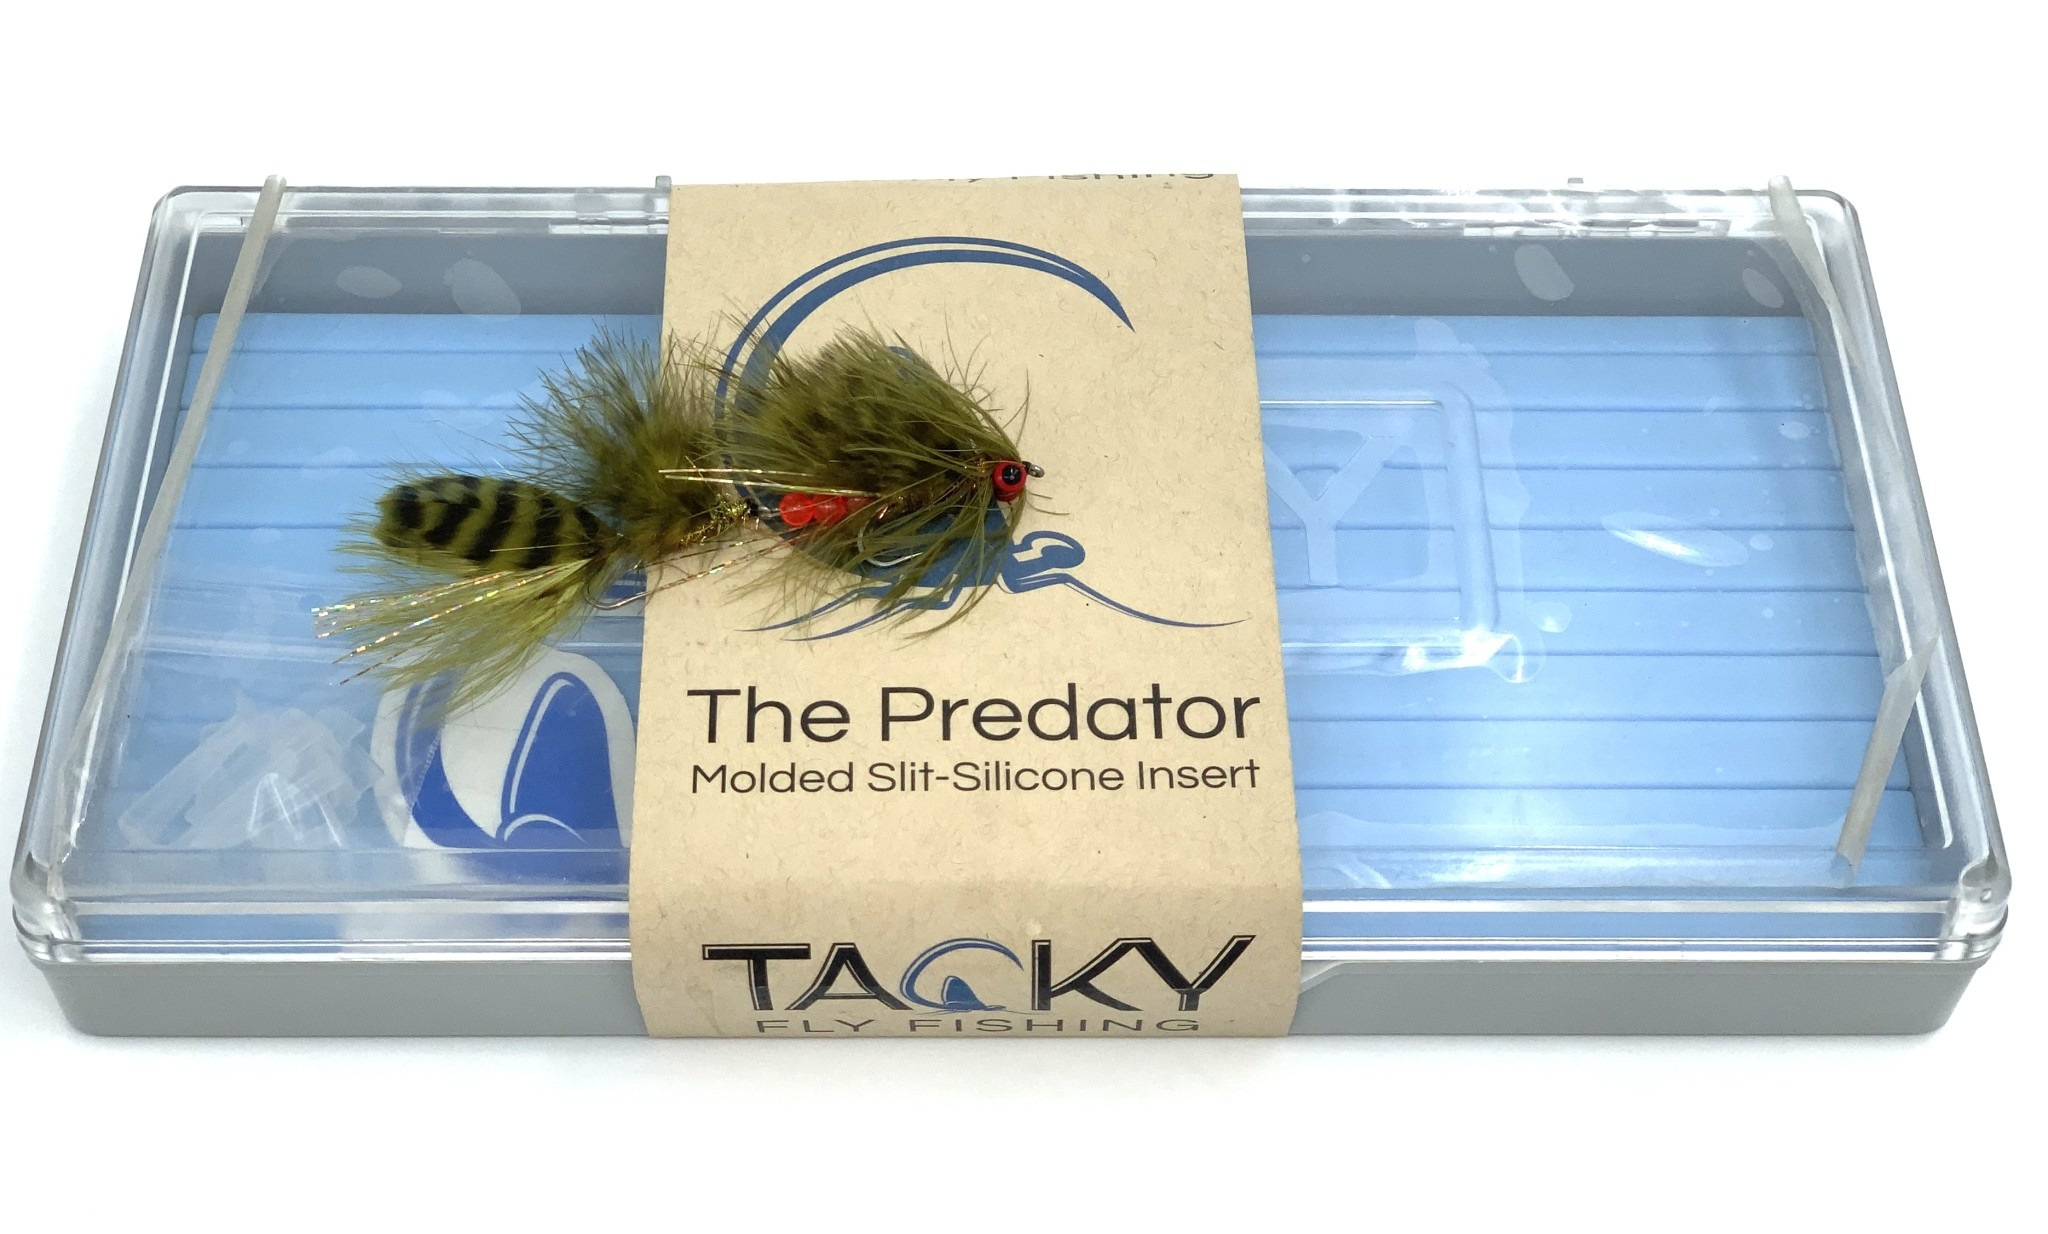 Tacky Predator Box